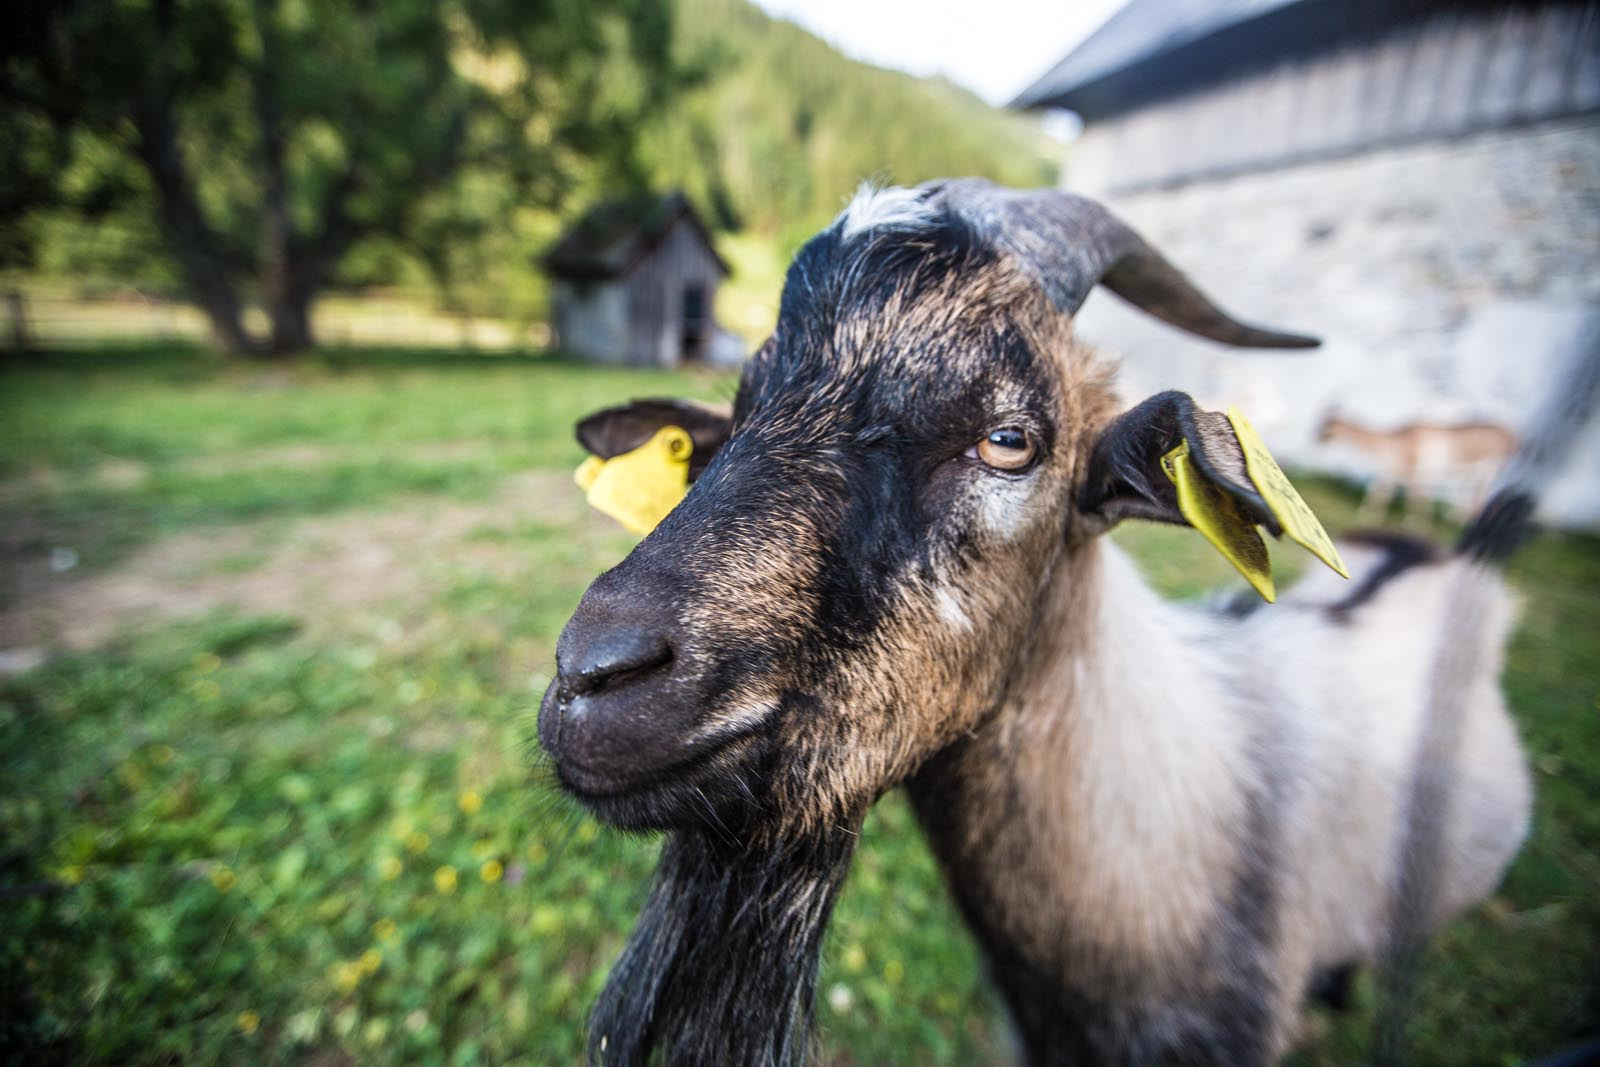 A friendly billy goat.